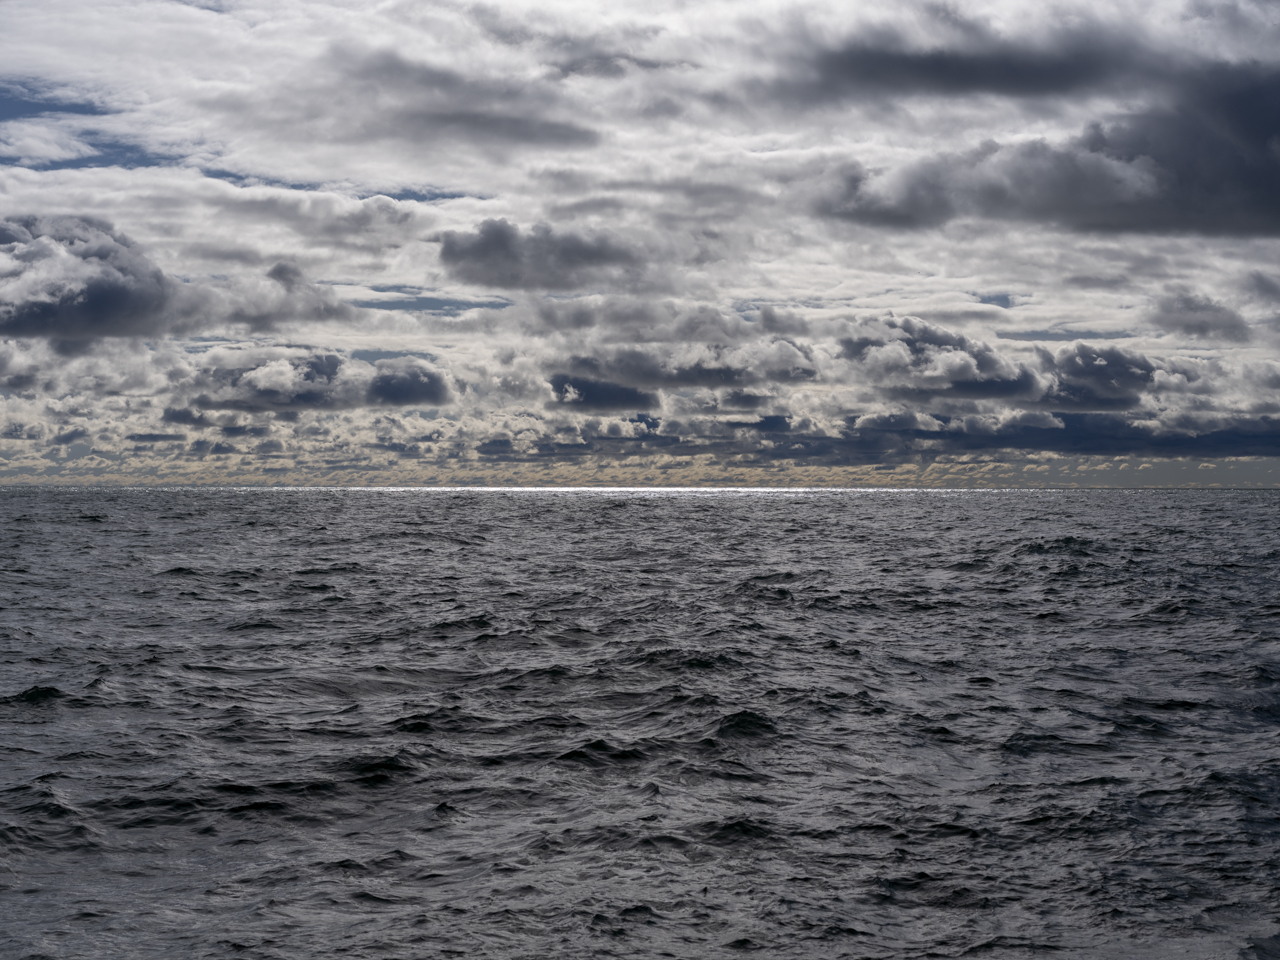 A stormy day over Lake Michigan with dark waves and clouds